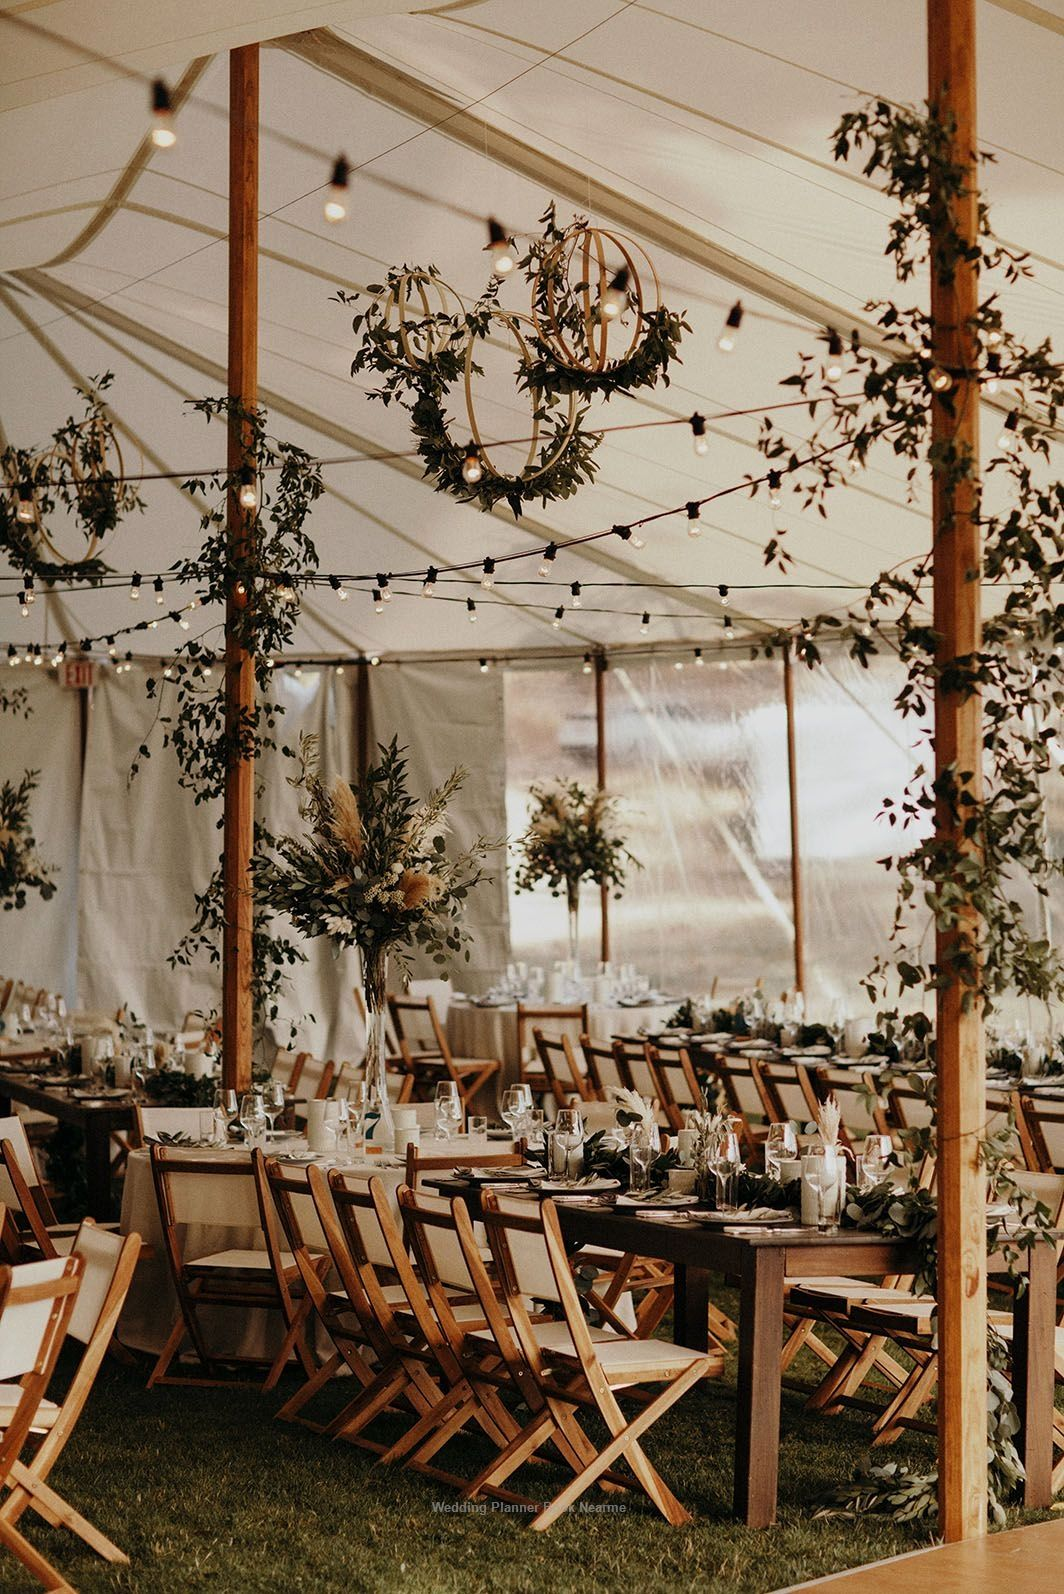 The Business Of Being A Wedding Planner How To Build A Lucrative Wedding Planning Business By Designing The Most Incredible Weddings For Your Clients In 2020 Outdoor Tent Wedding Tent Wedding